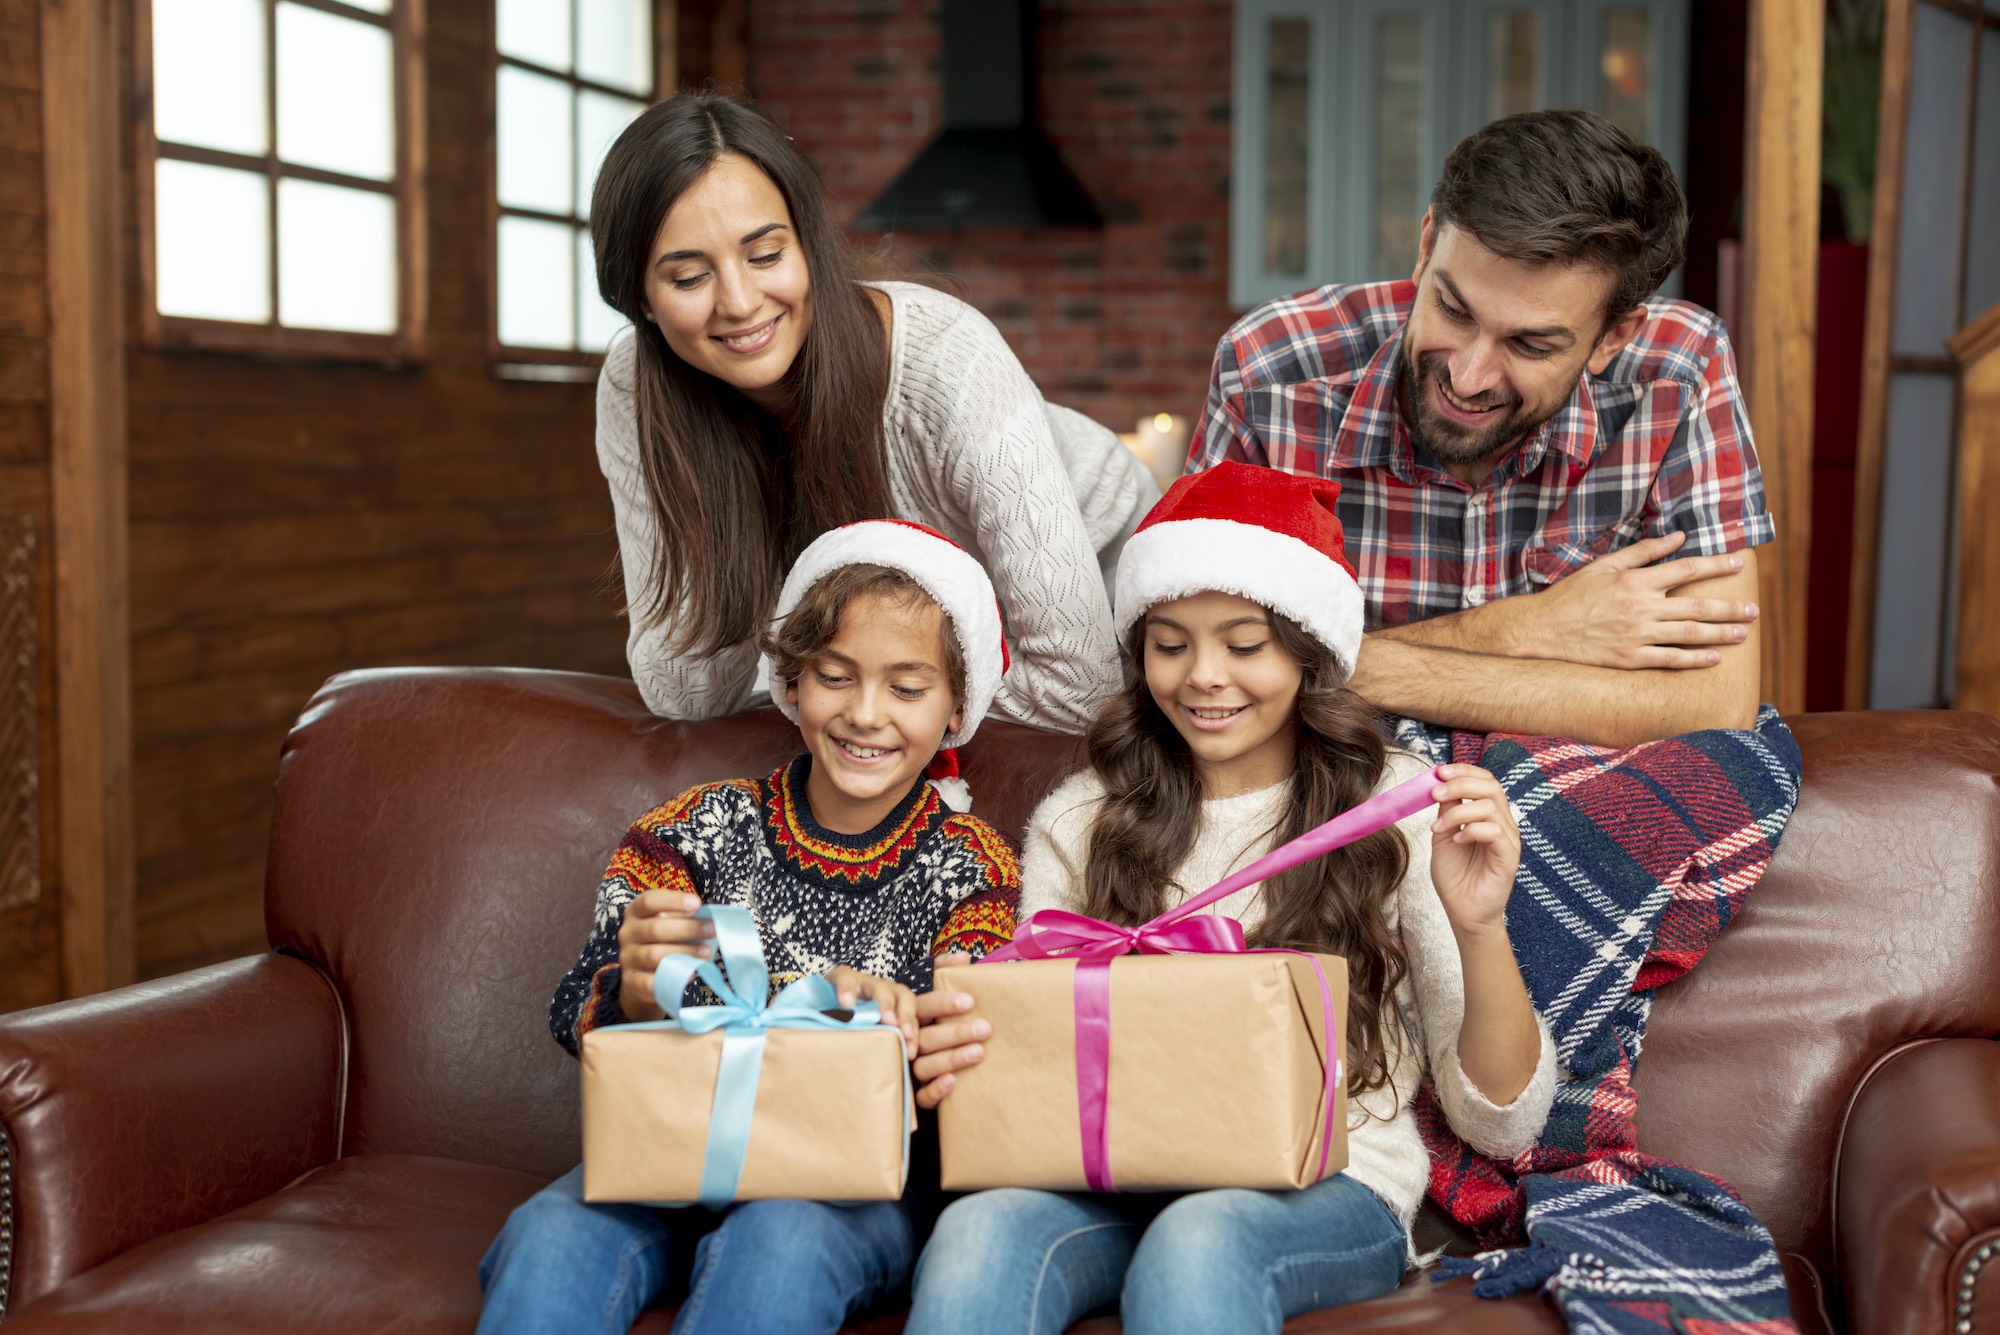 Buy Most Adorable Birthday Gifts For Kids Online